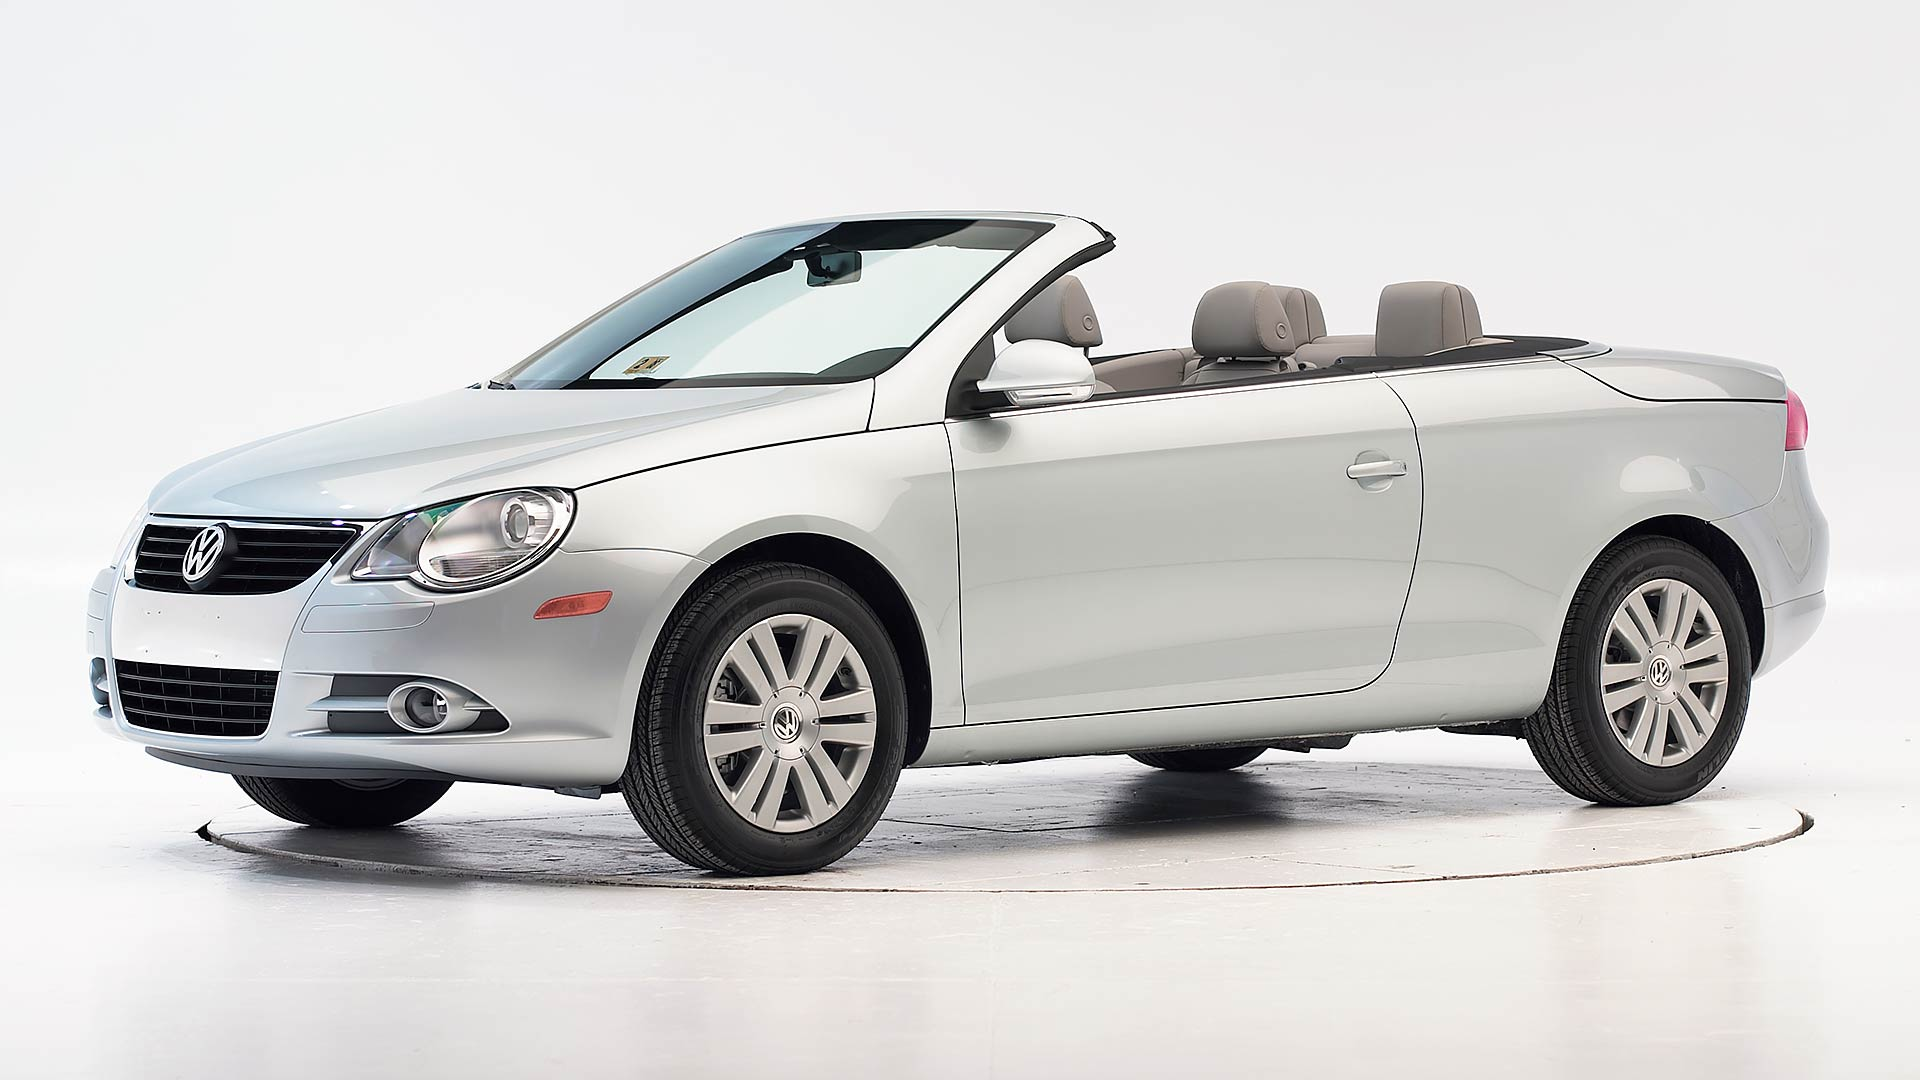 2010 Volkswagen Eos 2-door convertible